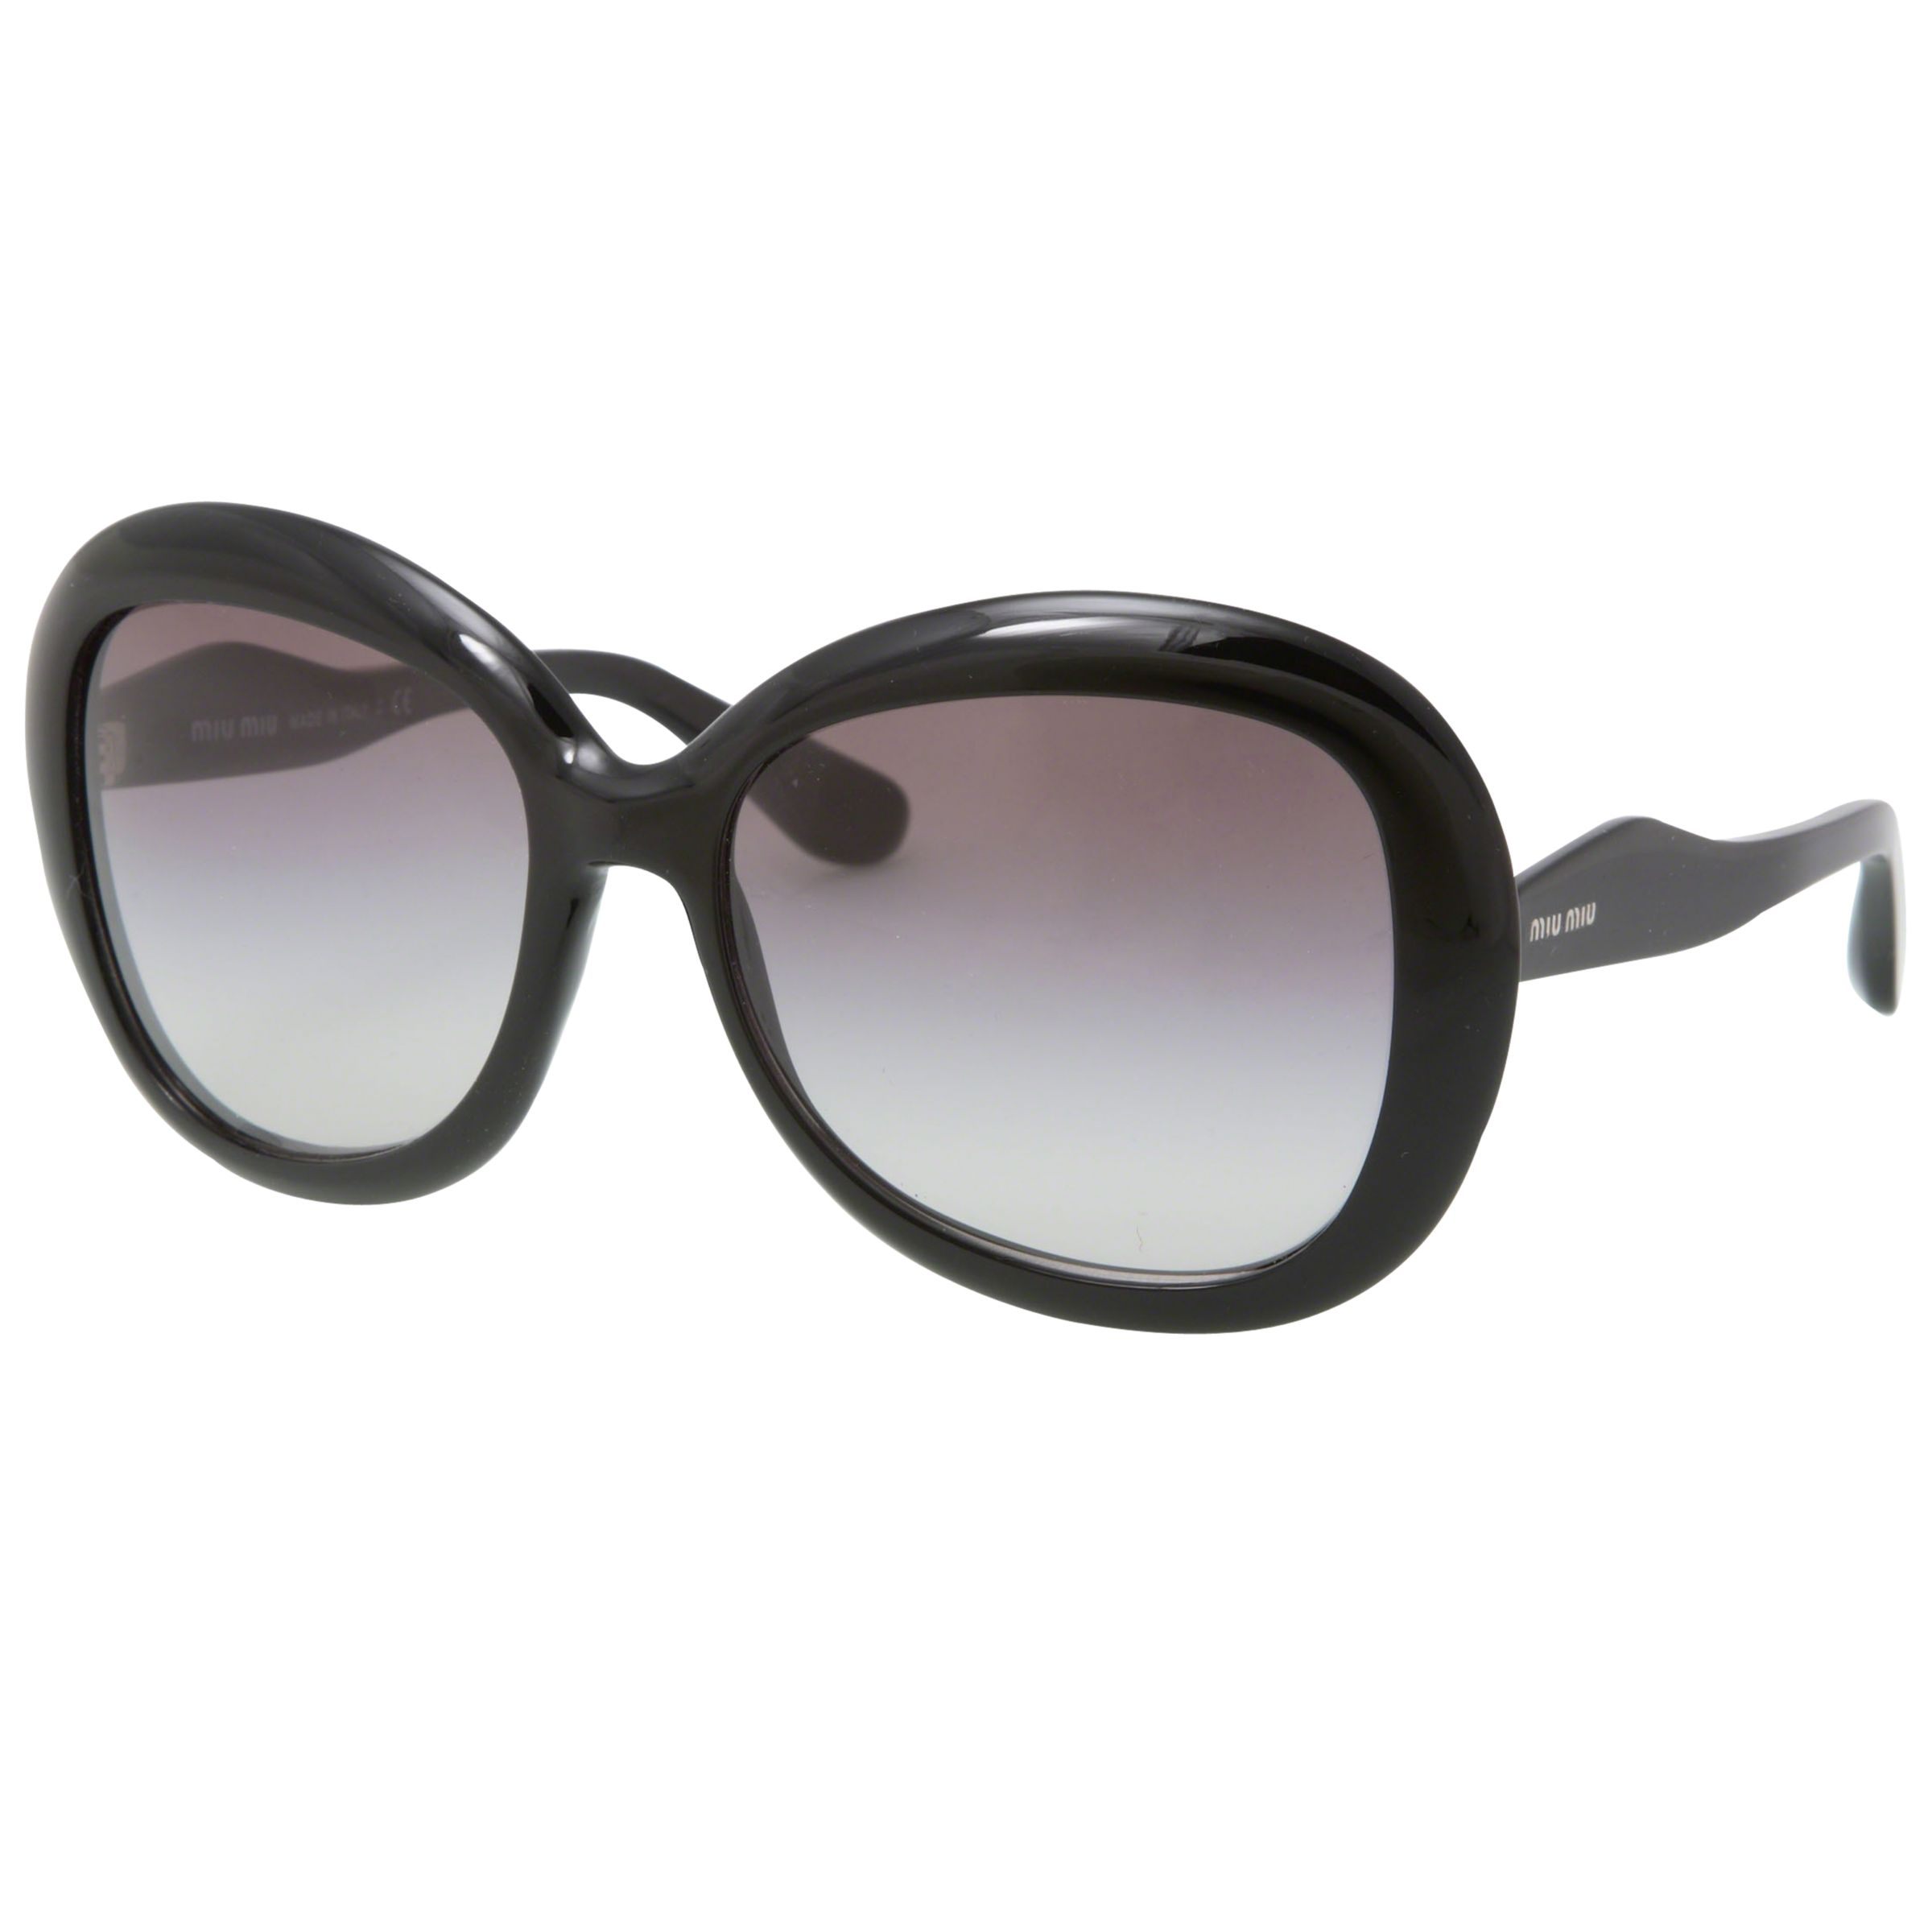 d0dd691e1663 Miu Miu MU 56RS Cat s Eye Sunglasses